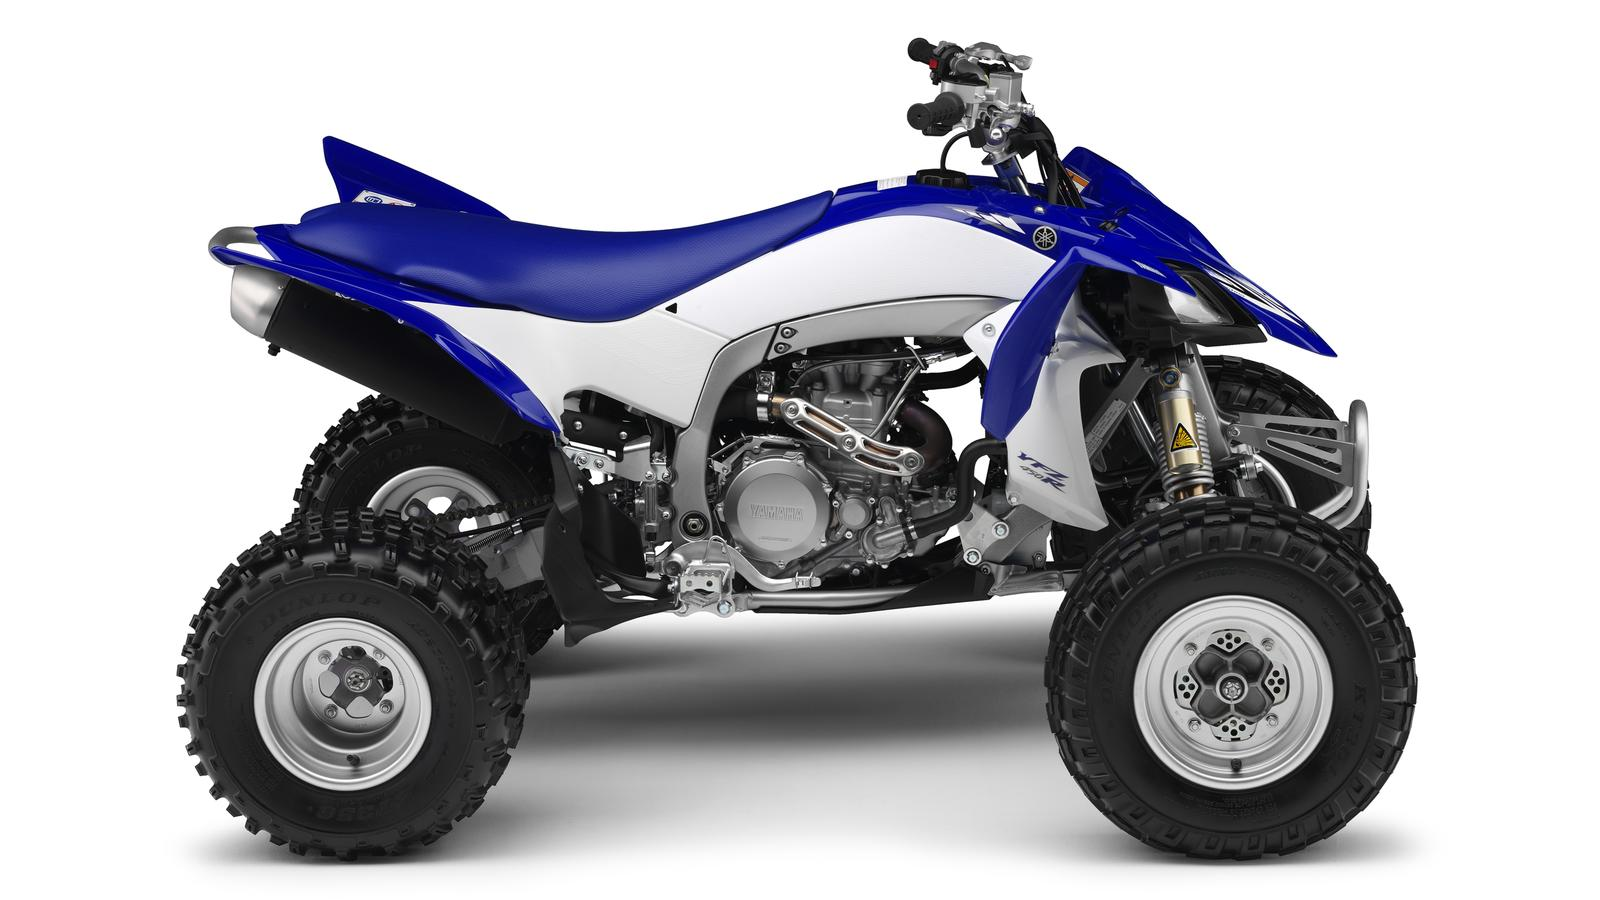 YAMAHA YFZ 450 R 2011 photo 6